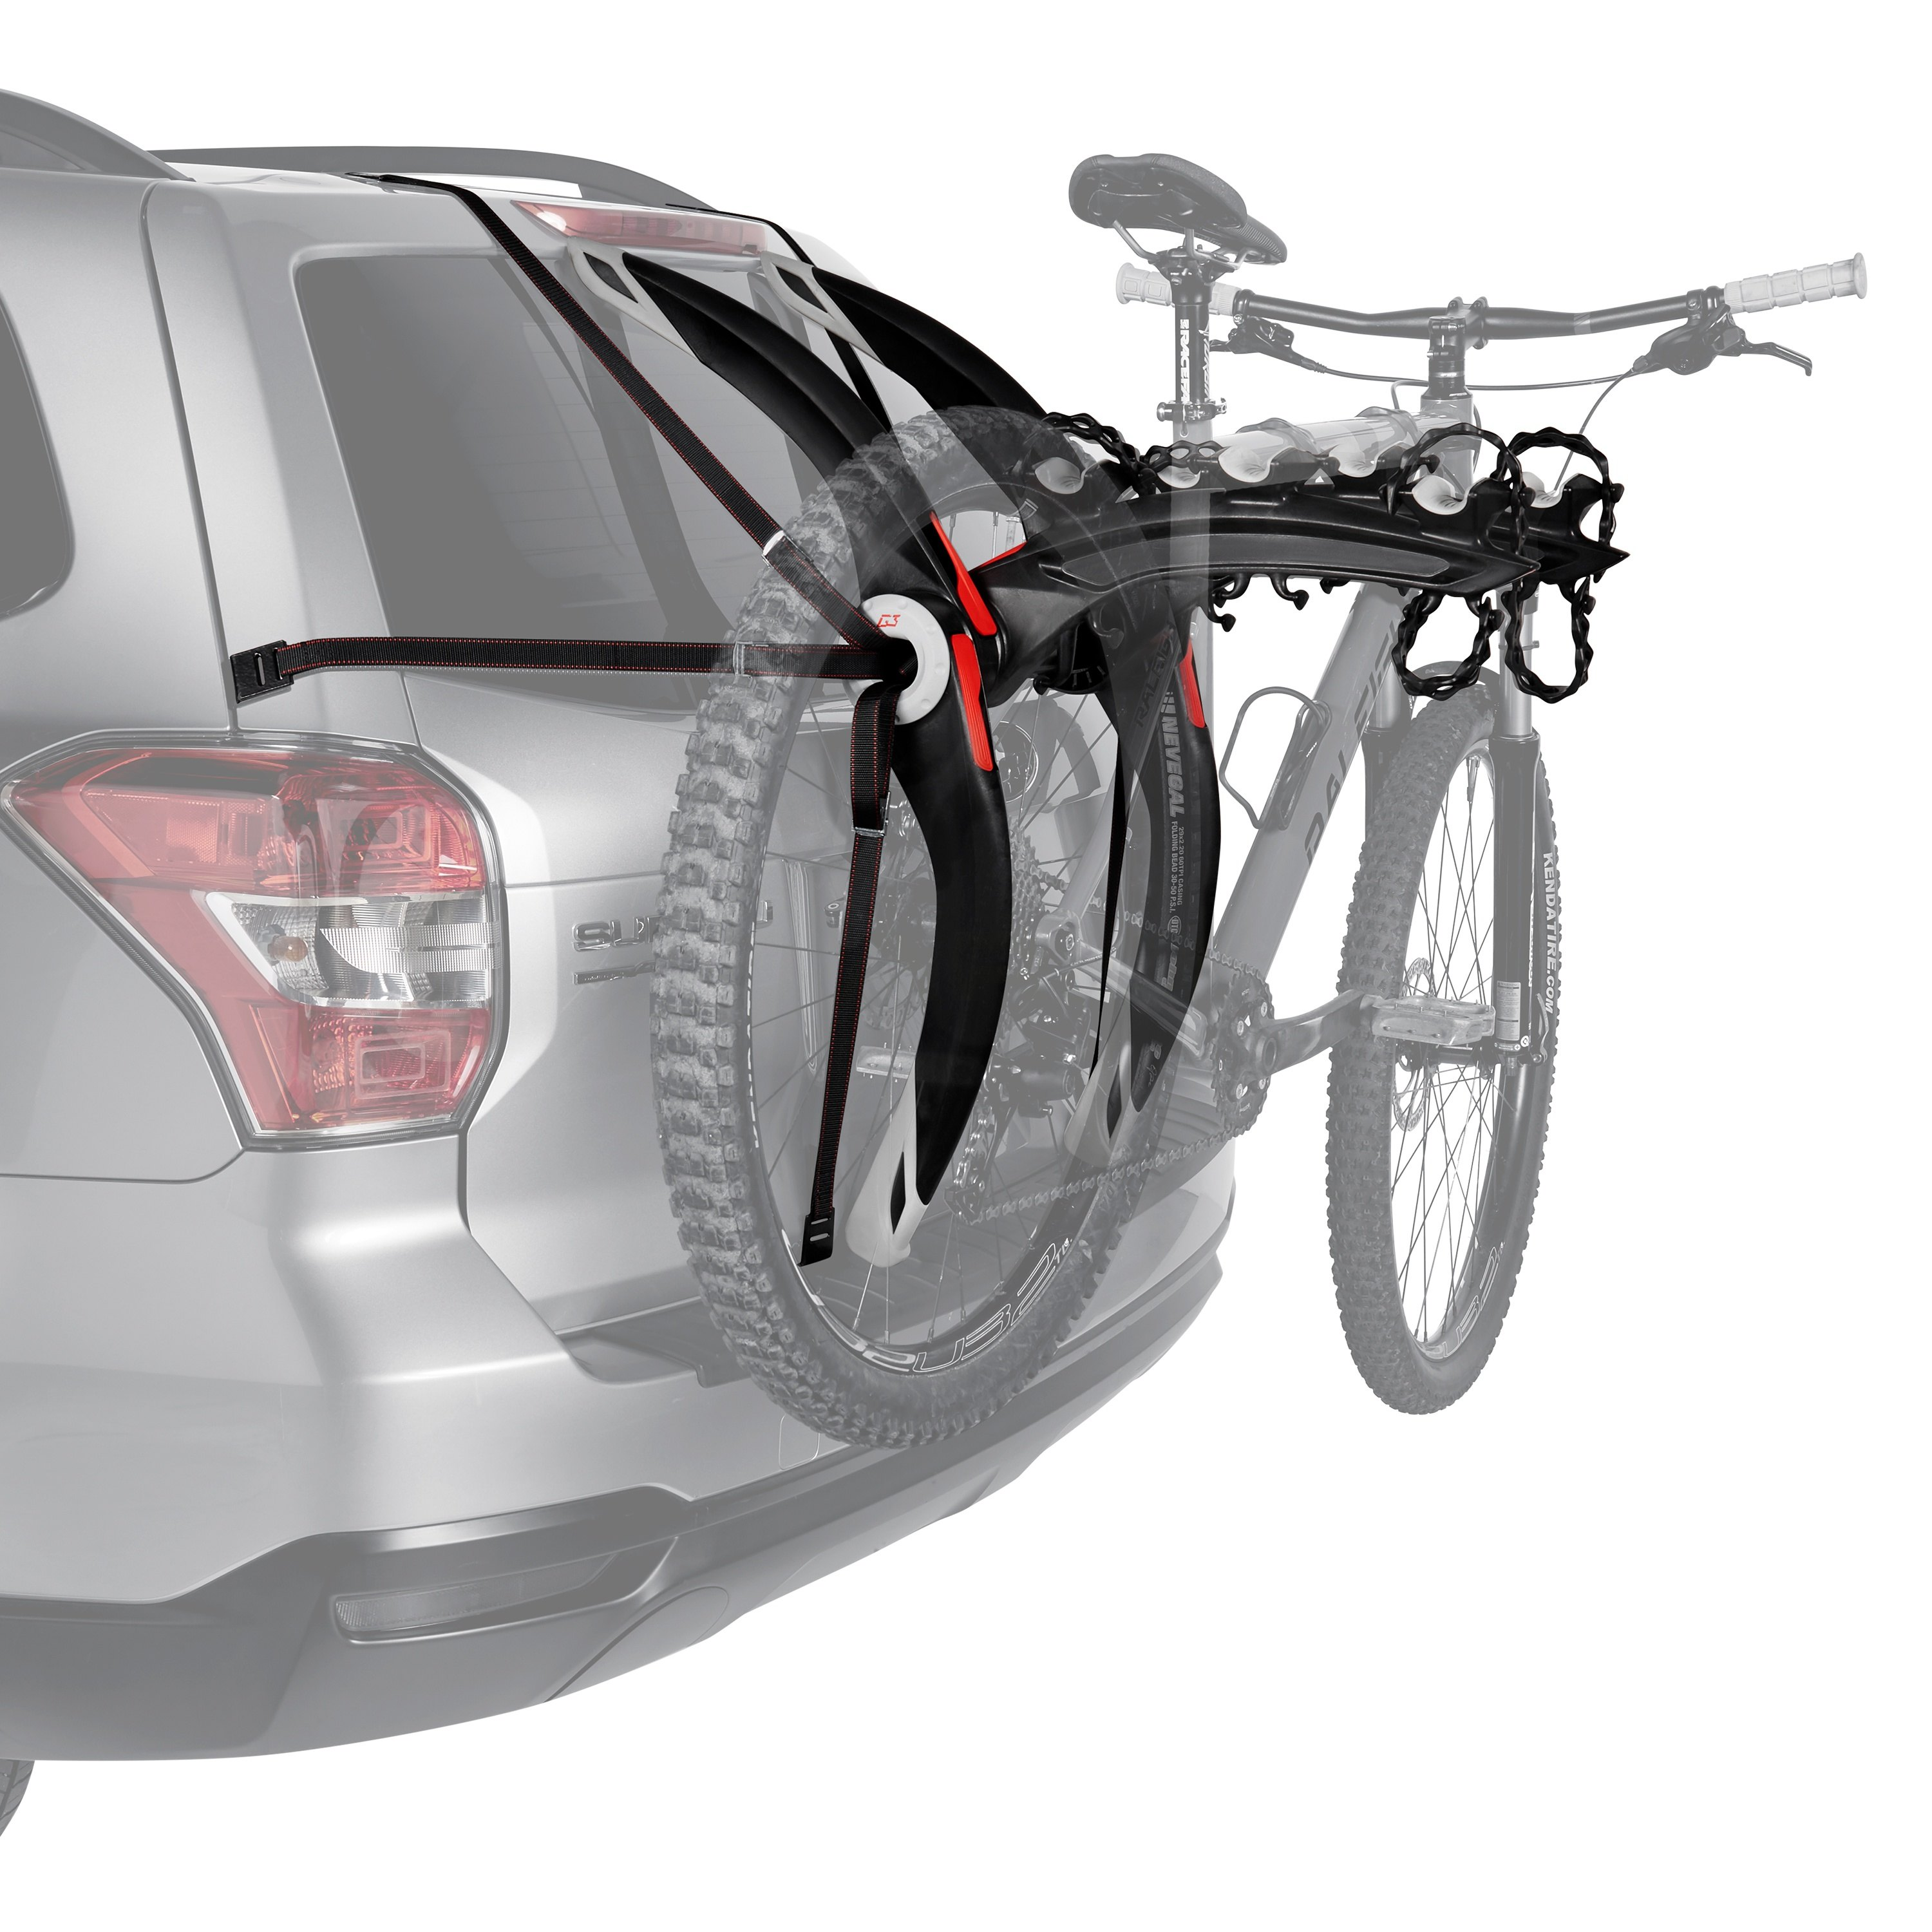 Vehicle Bicycle Rack CARiD.com